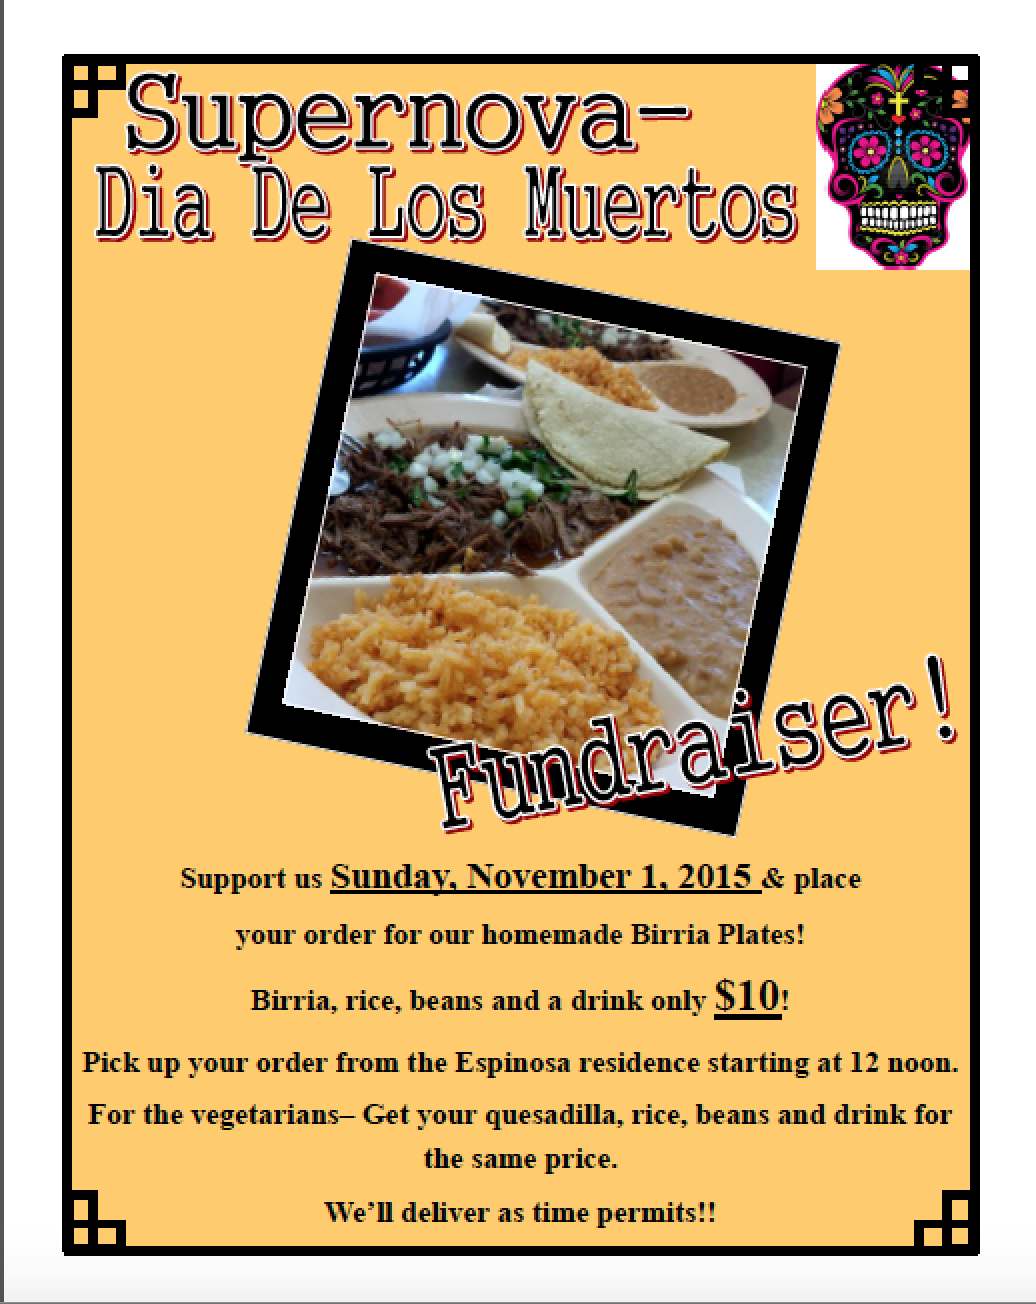 Thank you for your support at our DIA DE LOS MUERTOS- Birria Sale!